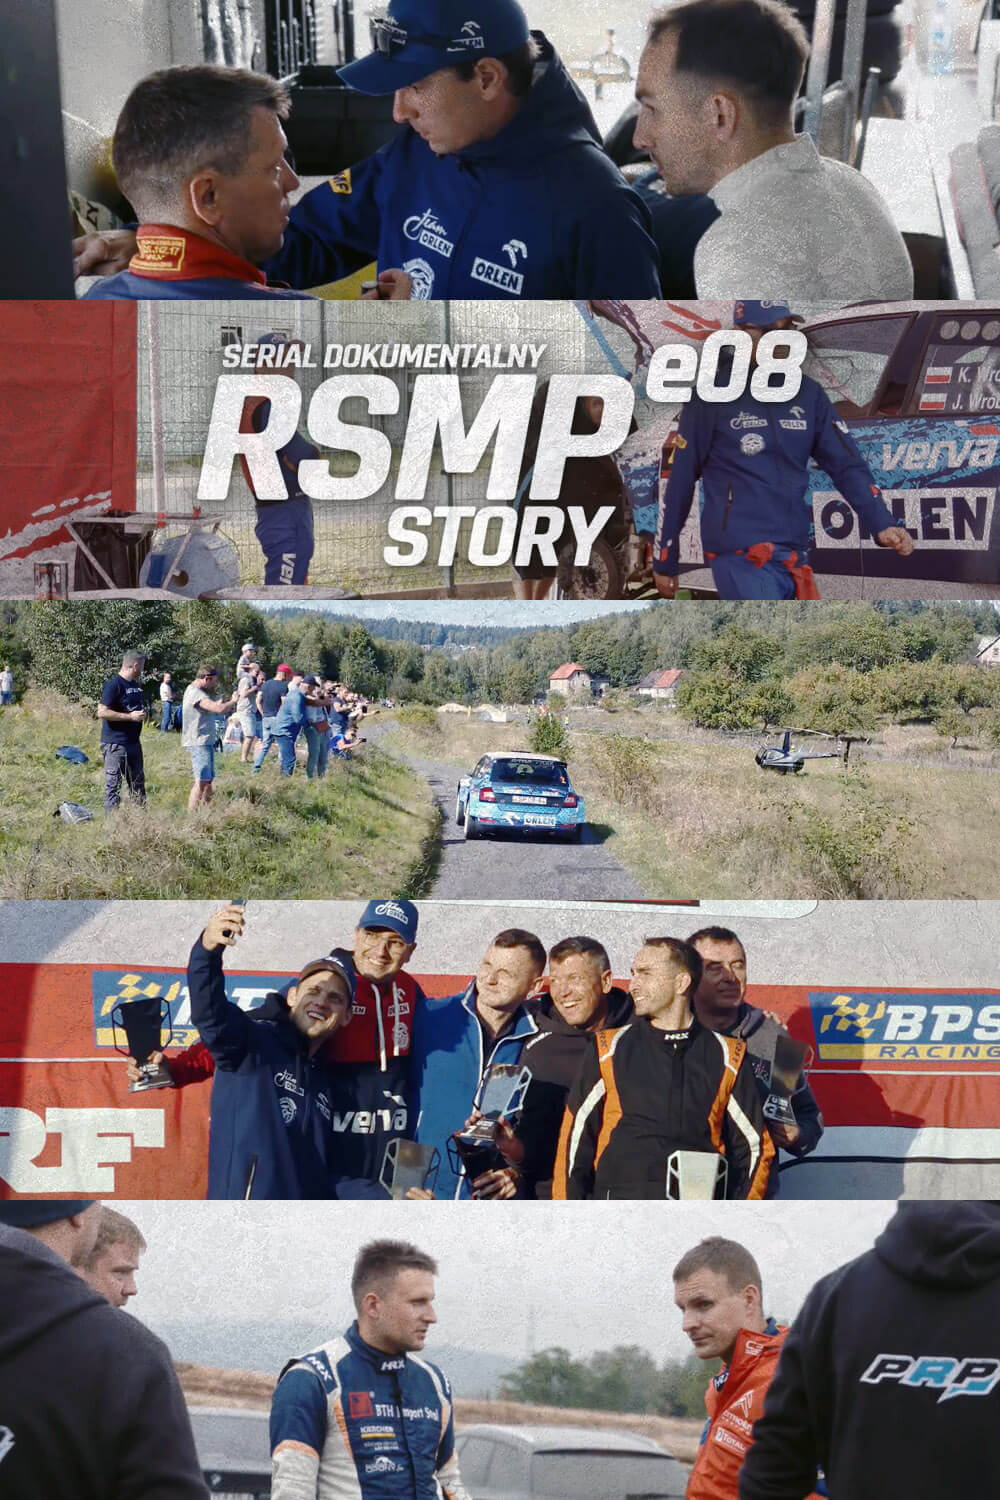 Poster - RSMP STORY s01e08